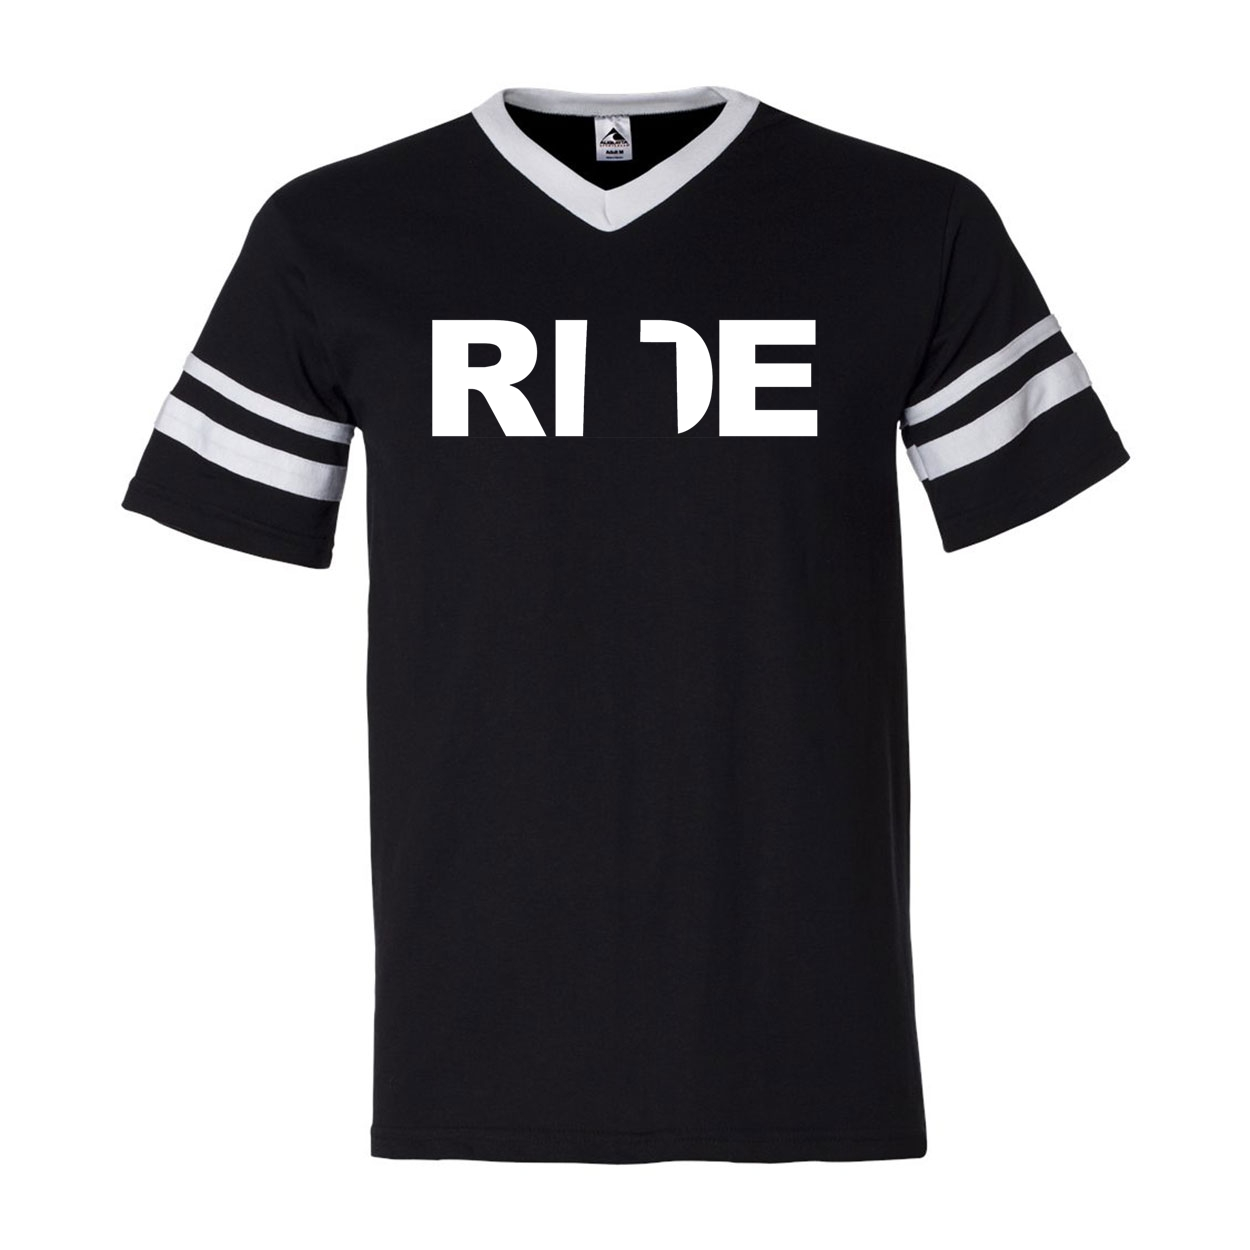 Ride Utah Classic Premium Striped Jersey T-Shirt Black/White (White Logo)